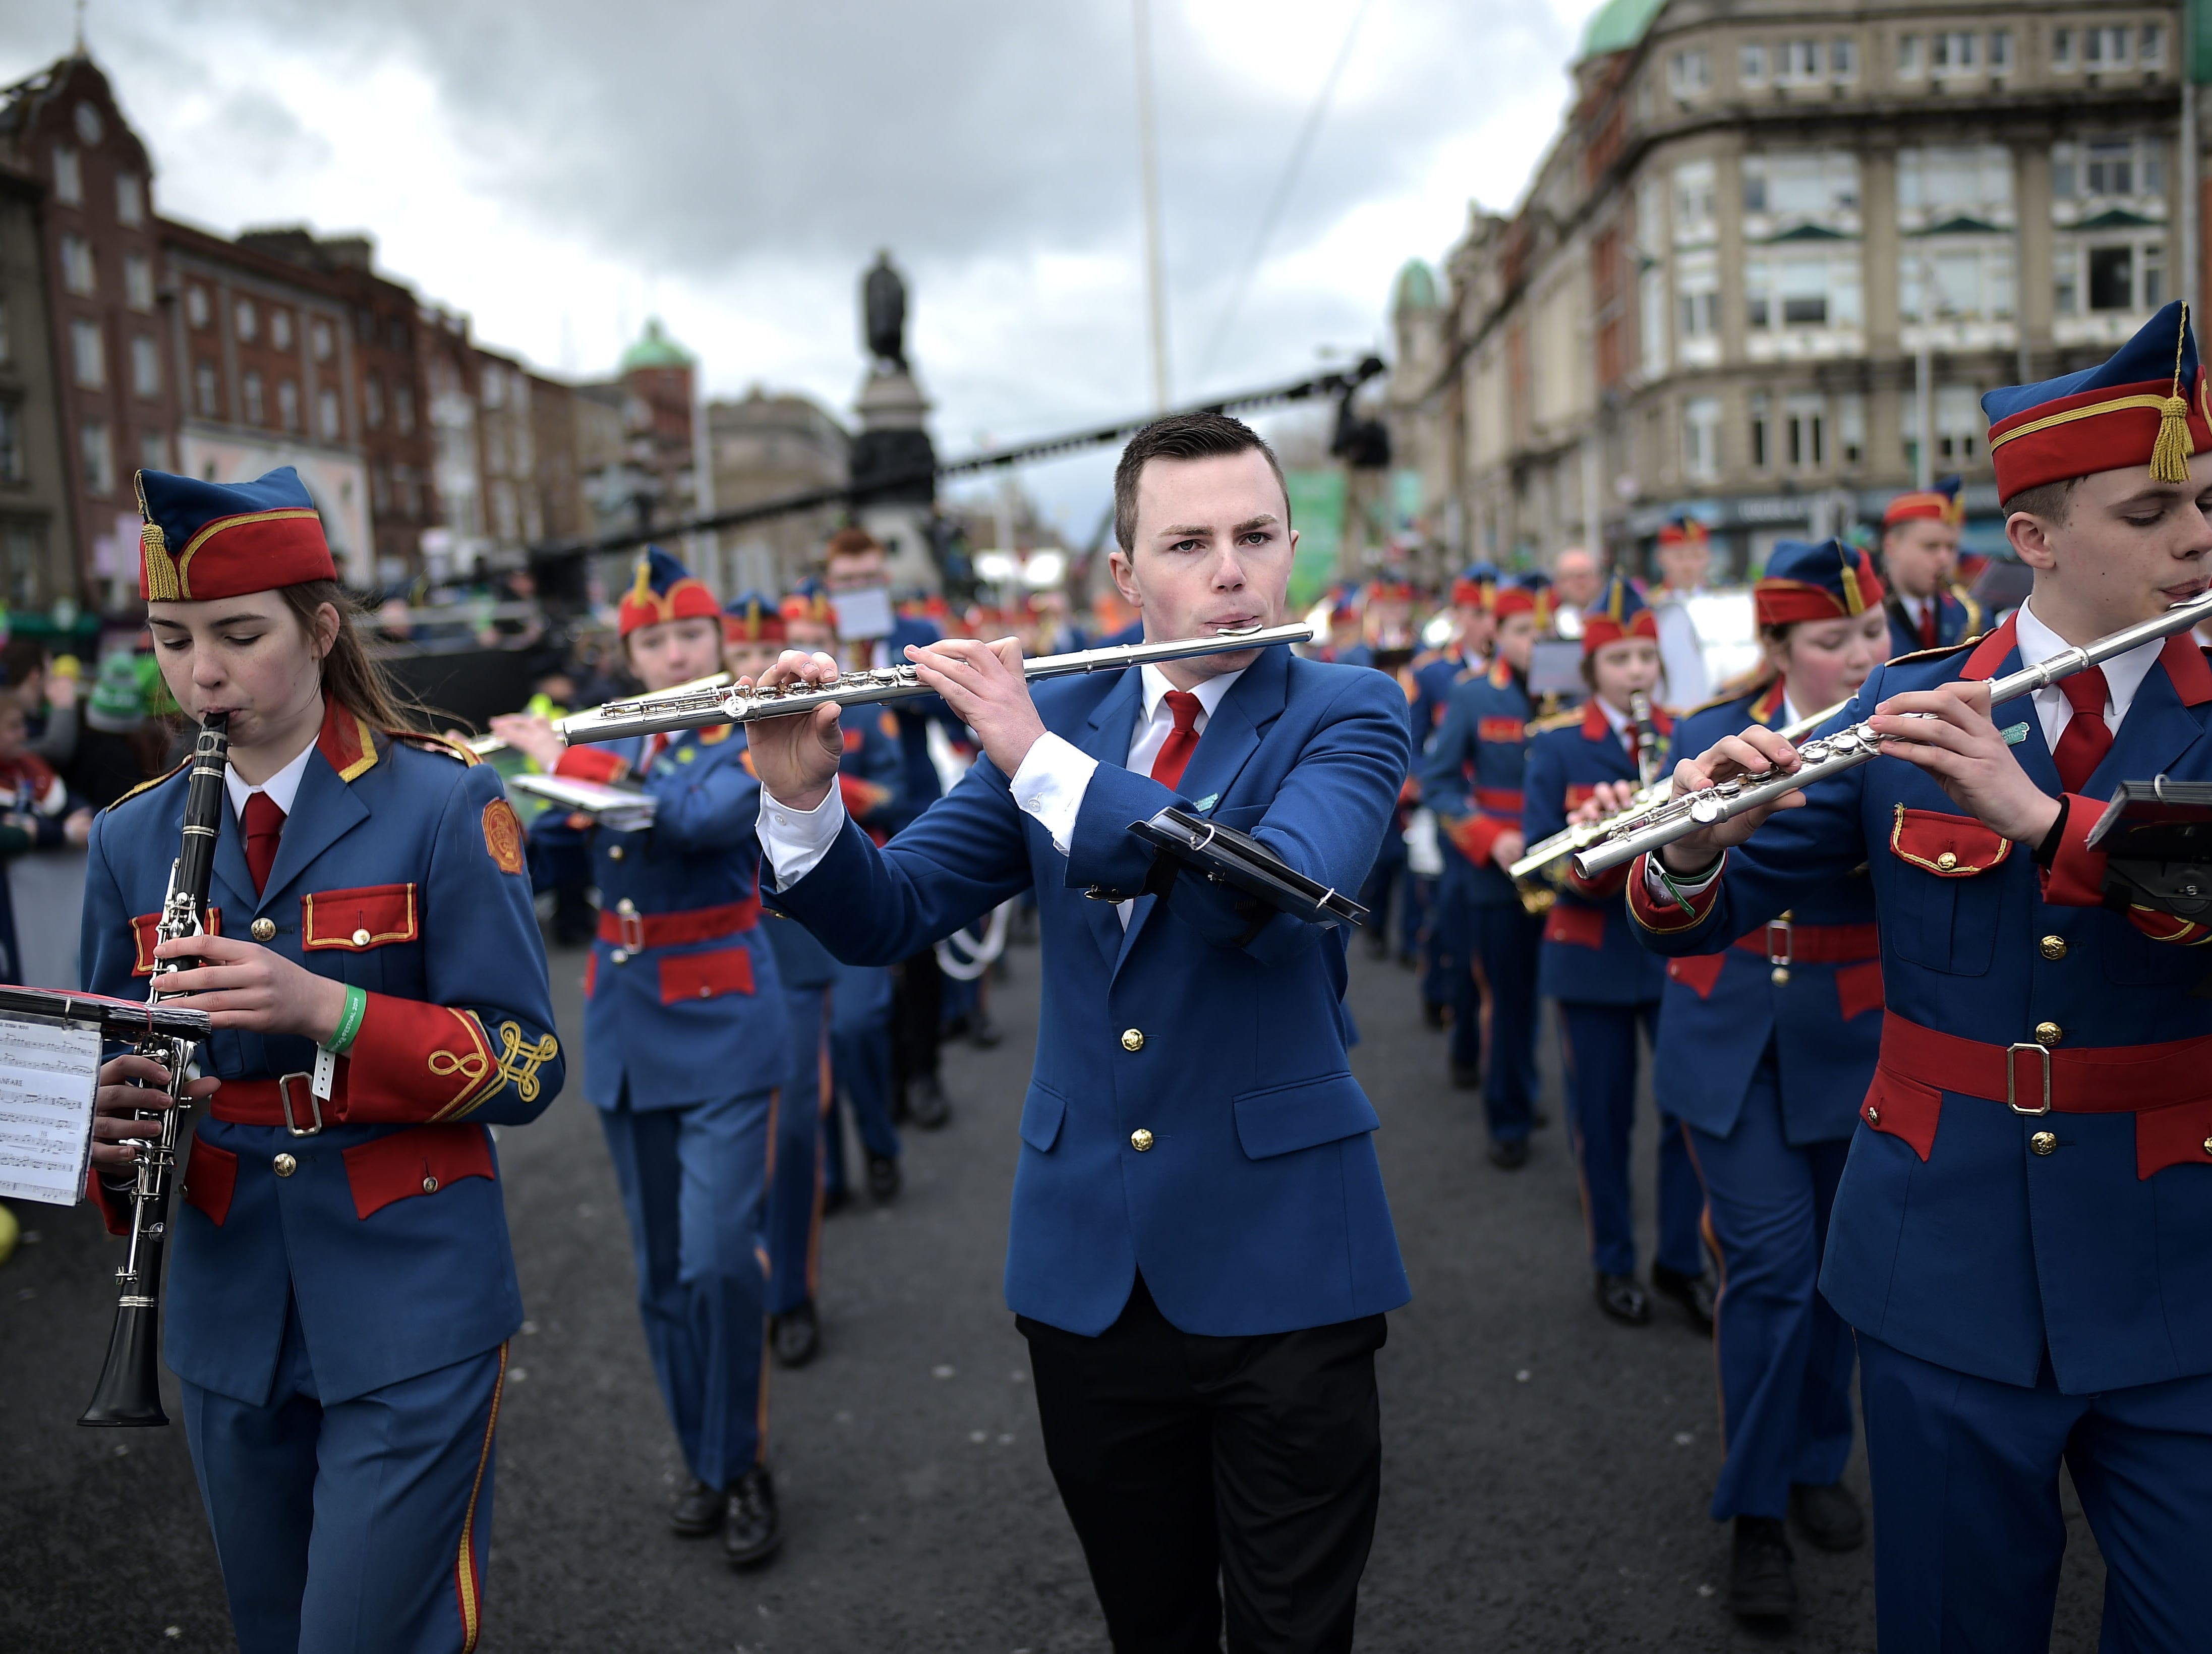 Members of the Artane Band take part in the annual Saint Patrick's Day parade on March 17, 2019 in Dublin, Ireland.